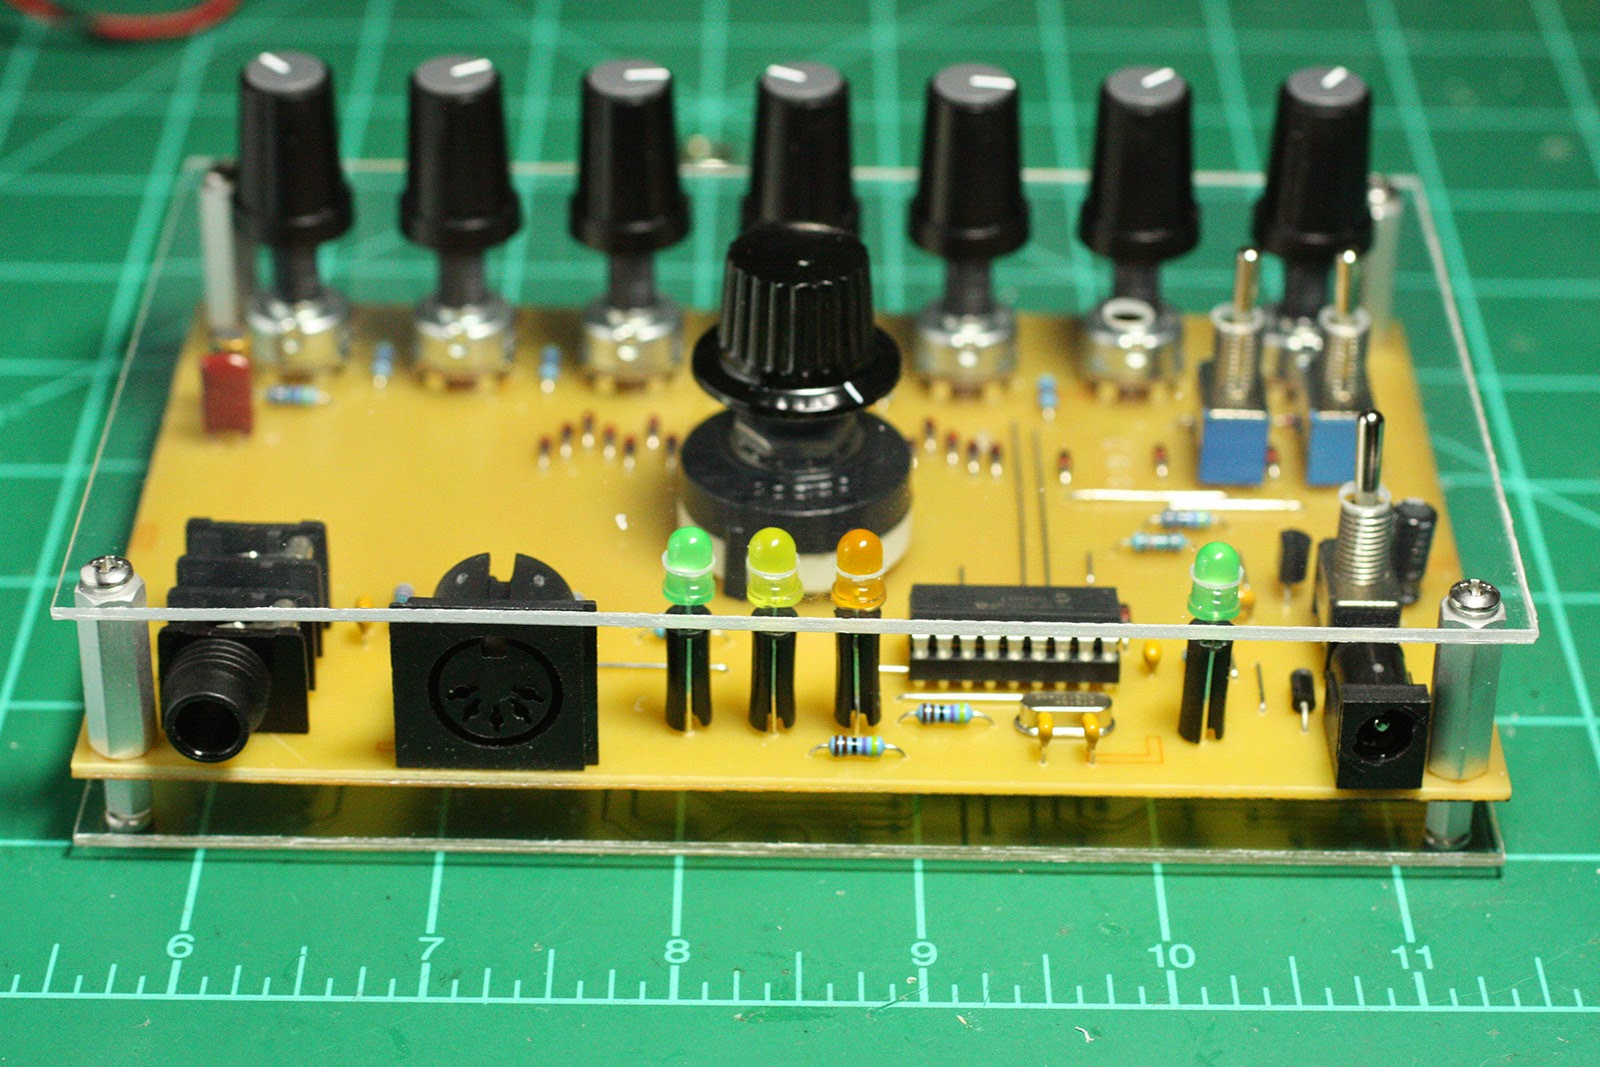 Proto Schlock Electronic Goldmine Lm358n Low Power Dual Operational Amplifier St Some Shots Of My Synthpic Build More Info Coming Soon